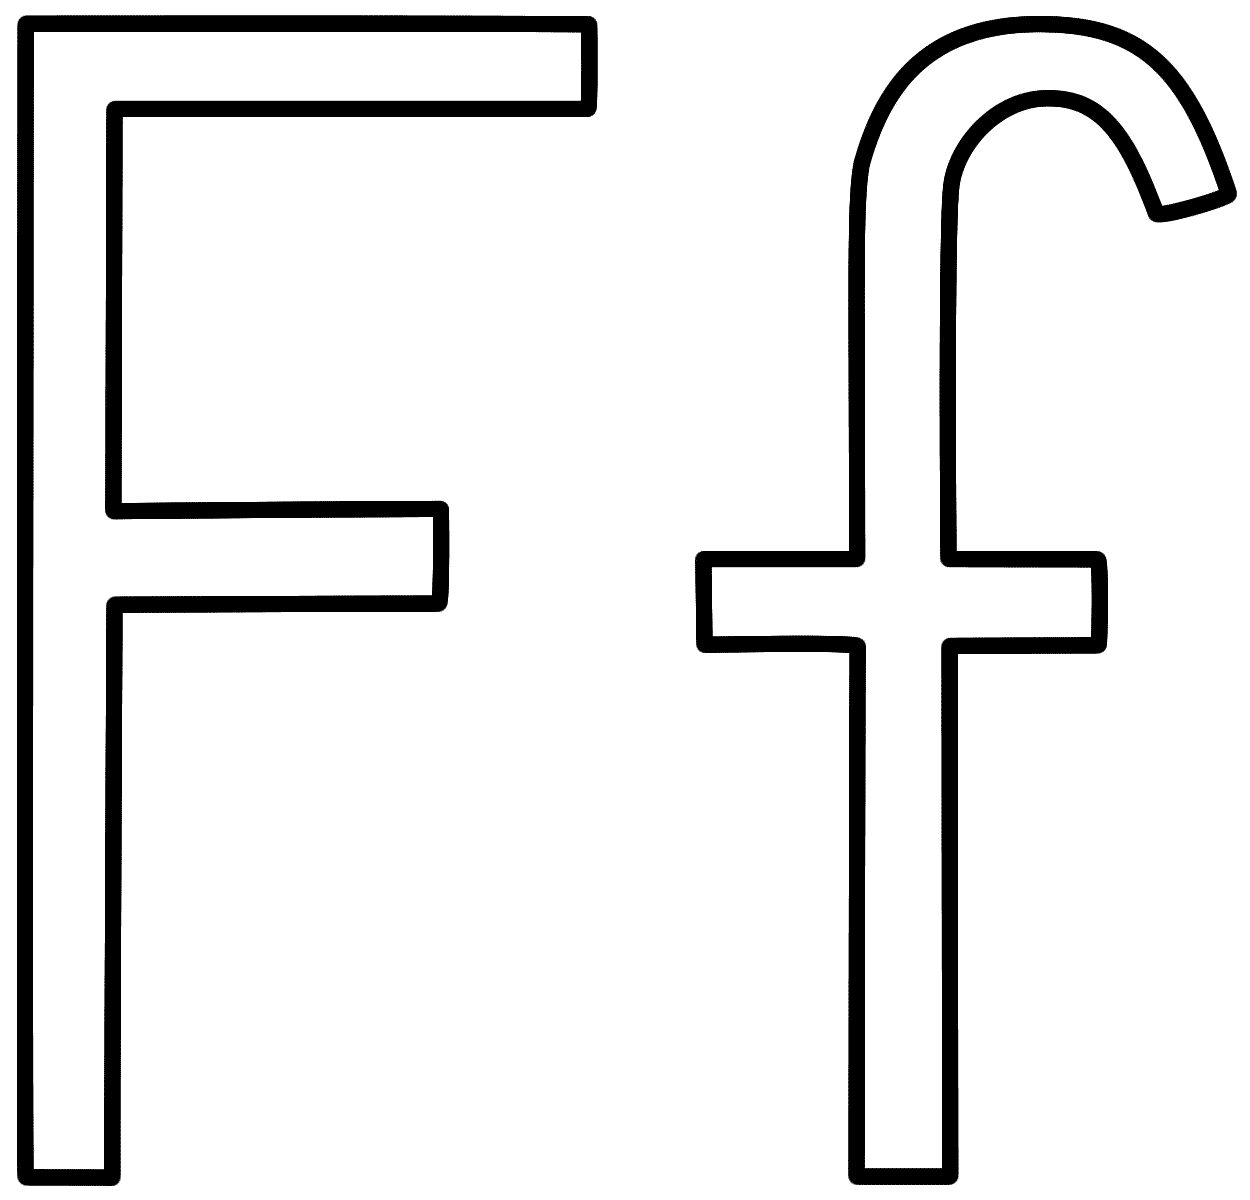 Letter F Coloring Page Alphabet Coloring Home - Letter-f-coloring-page